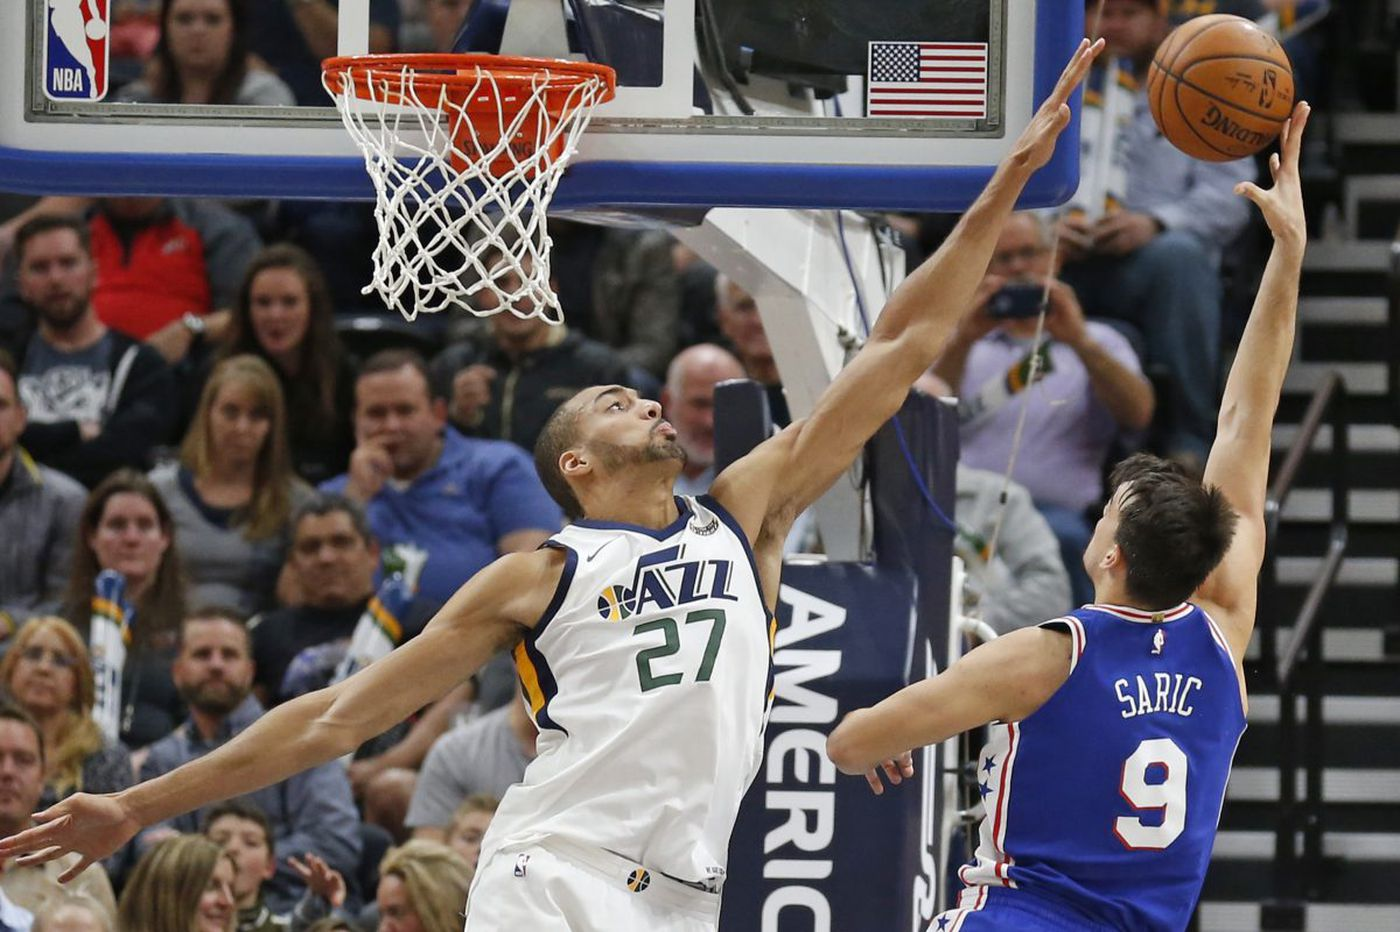 Sixers-Jazz: Dario Saric does it all, and other quick thoughts from a 104-97 win